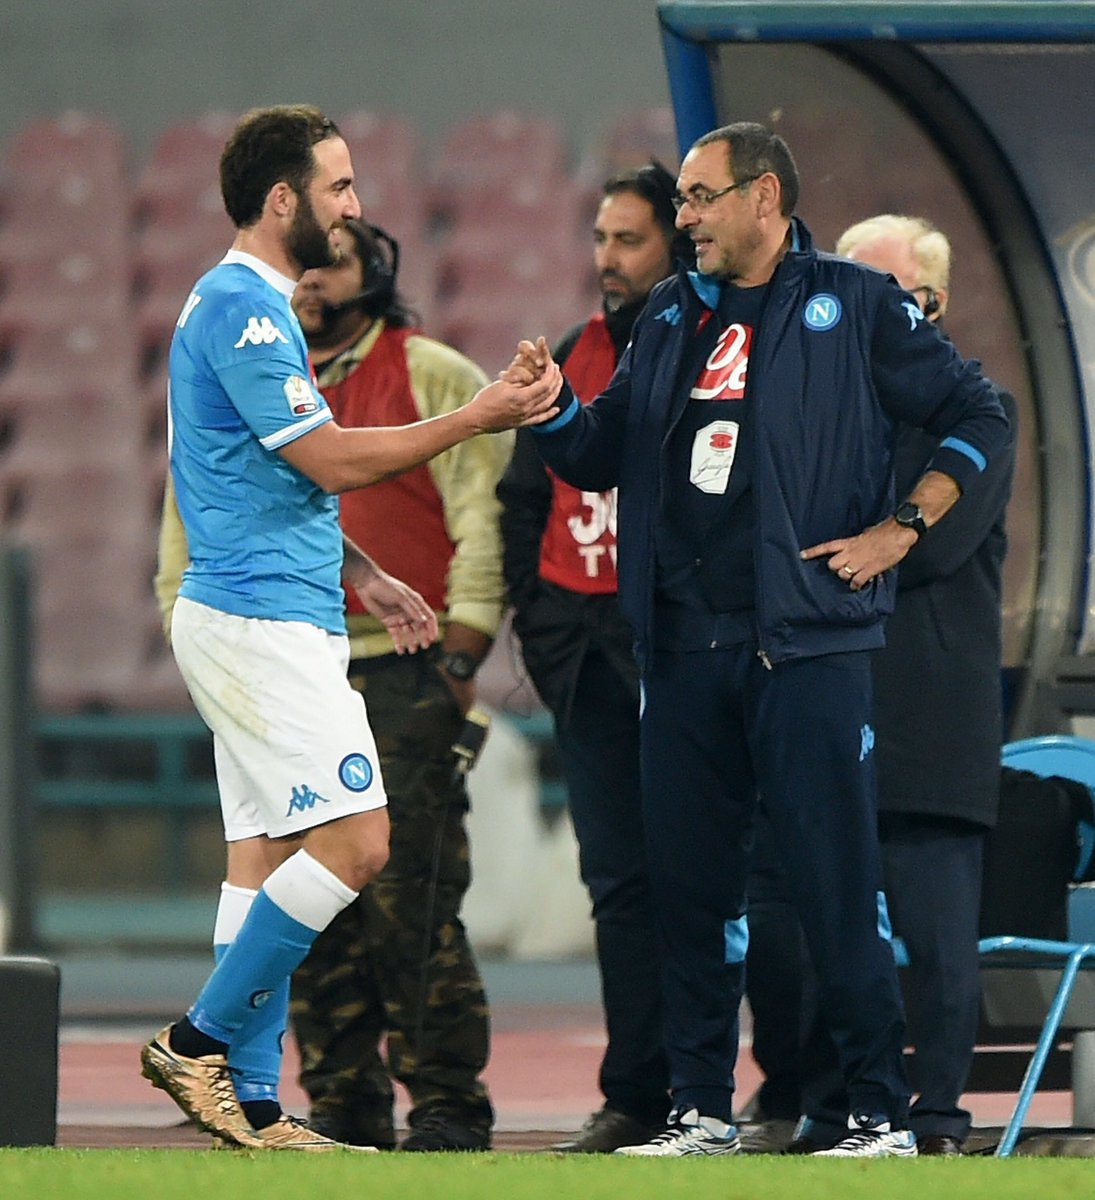 No player in Serie A history has scored more goals in a single season than Gonzalo Higuaín in 2015/16 for Napoli.  🔵 35 games ⚽️ 36 goals  All under Maurizio Sarri.